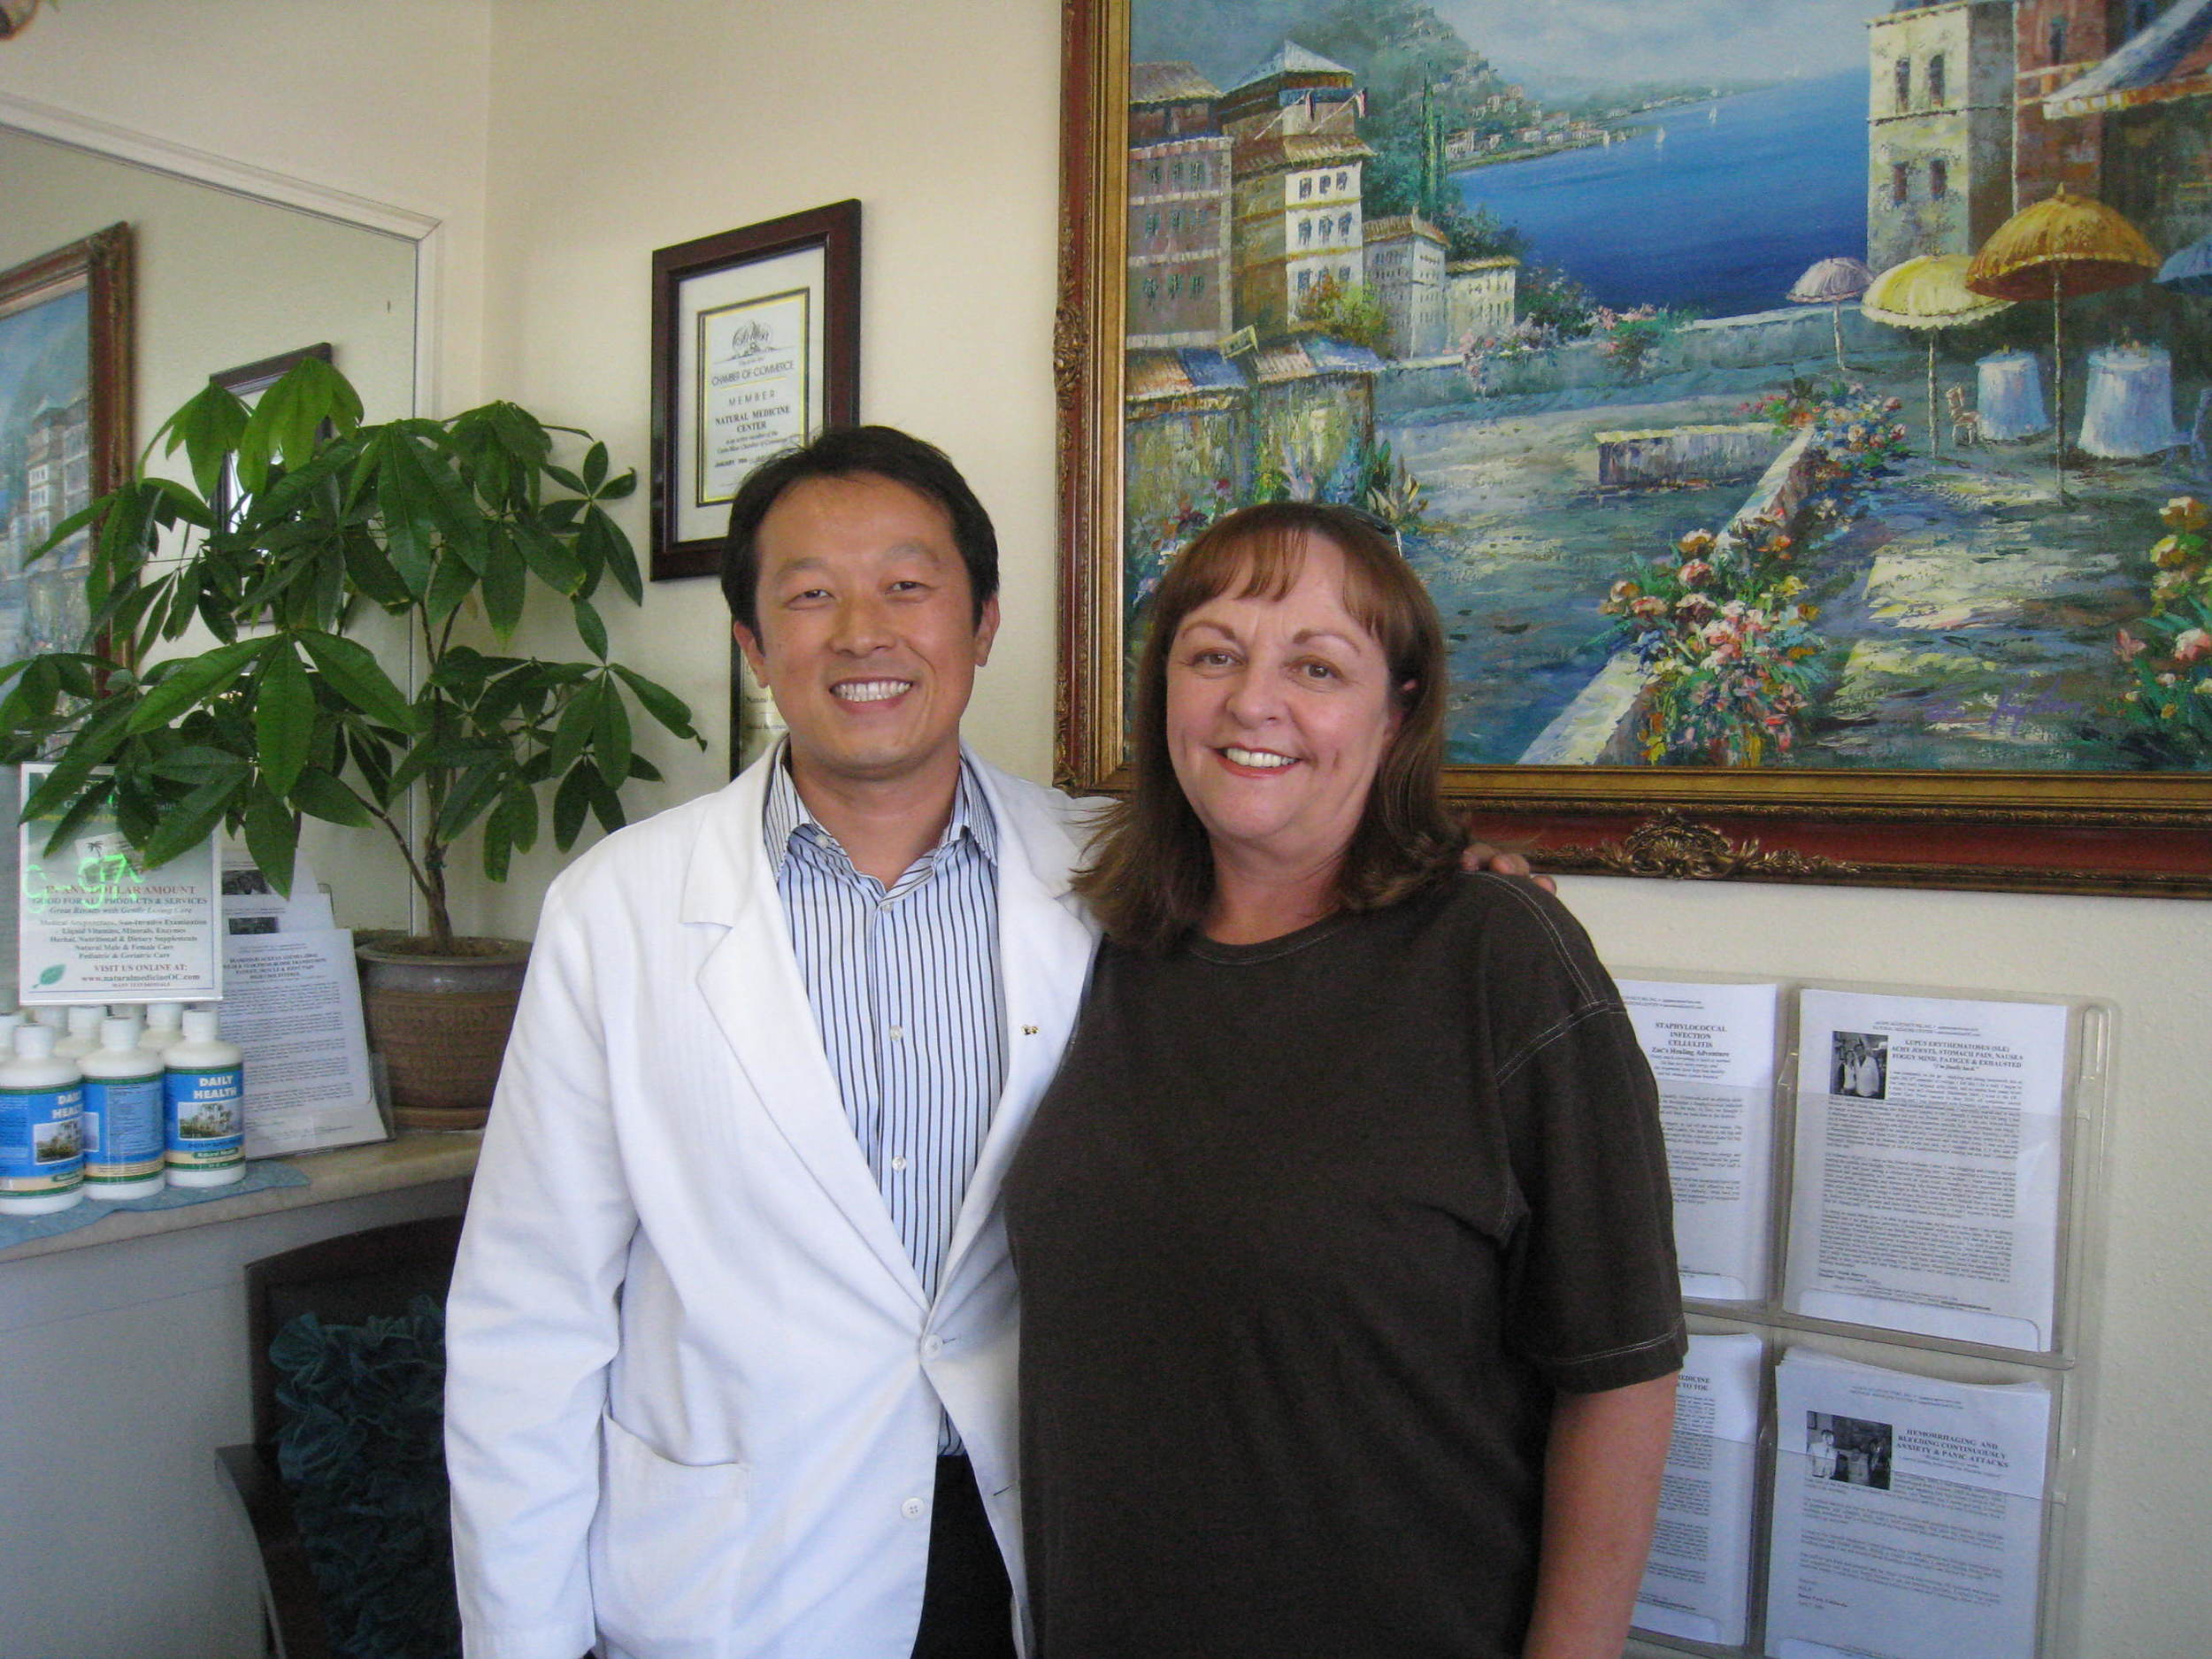 MY RESULTS WERE A MIRACLE | TORN MENISCUS | BONE SPURS, FOOT PROBLEM | CAR ACCIDENT (KNEE DAMAGE) | GREAT RESULTS WITH ACUPUNCTURE AND HEALING HERBS